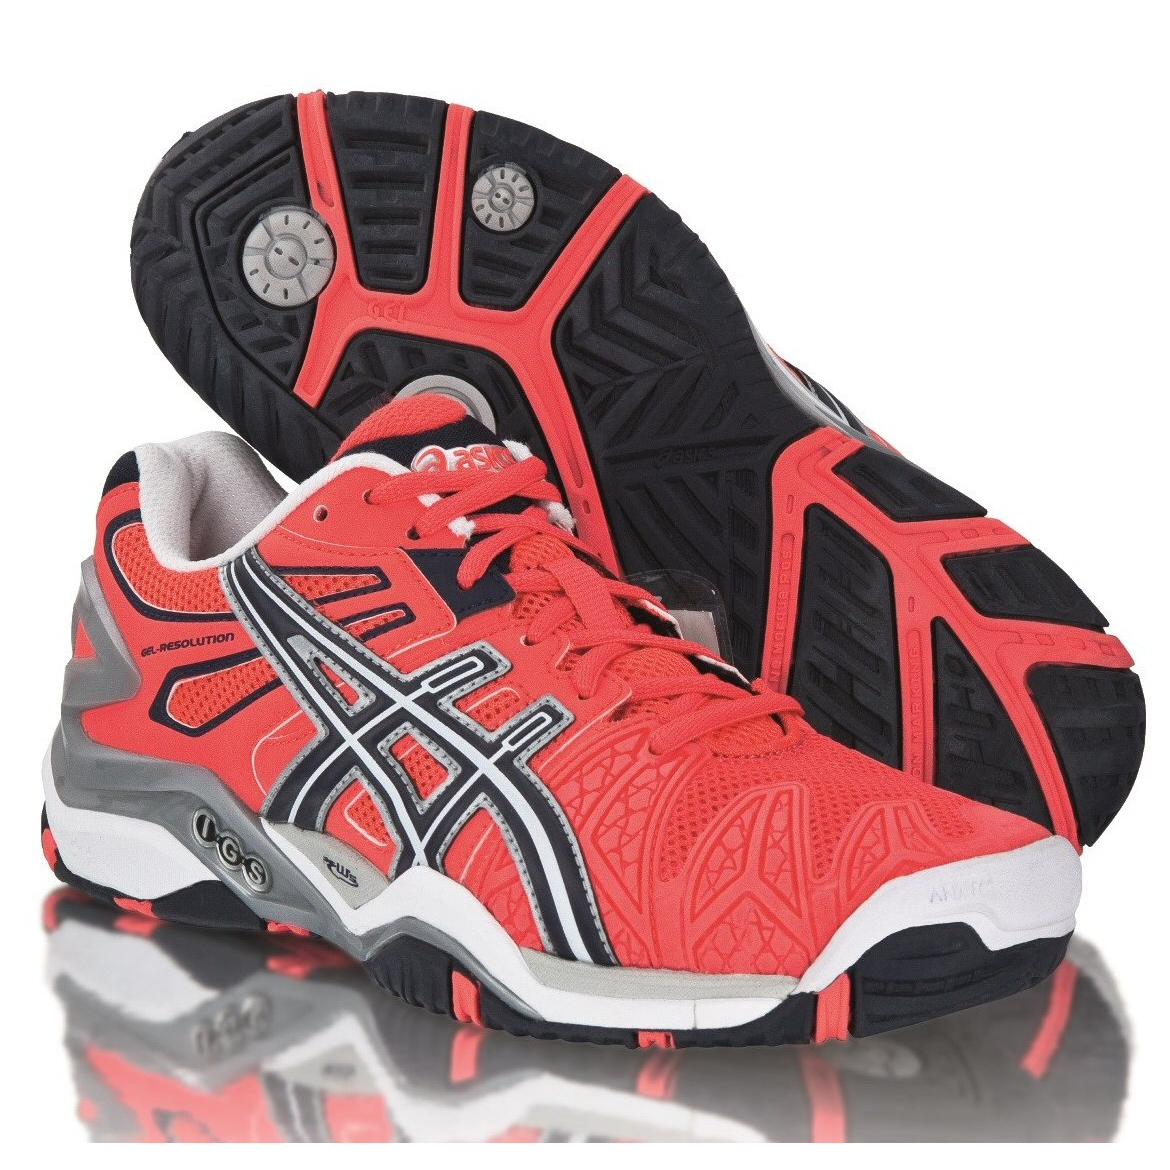 asics gel resolution 5 divapink tennisschuhe damen online bestellen. Black Bedroom Furniture Sets. Home Design Ideas